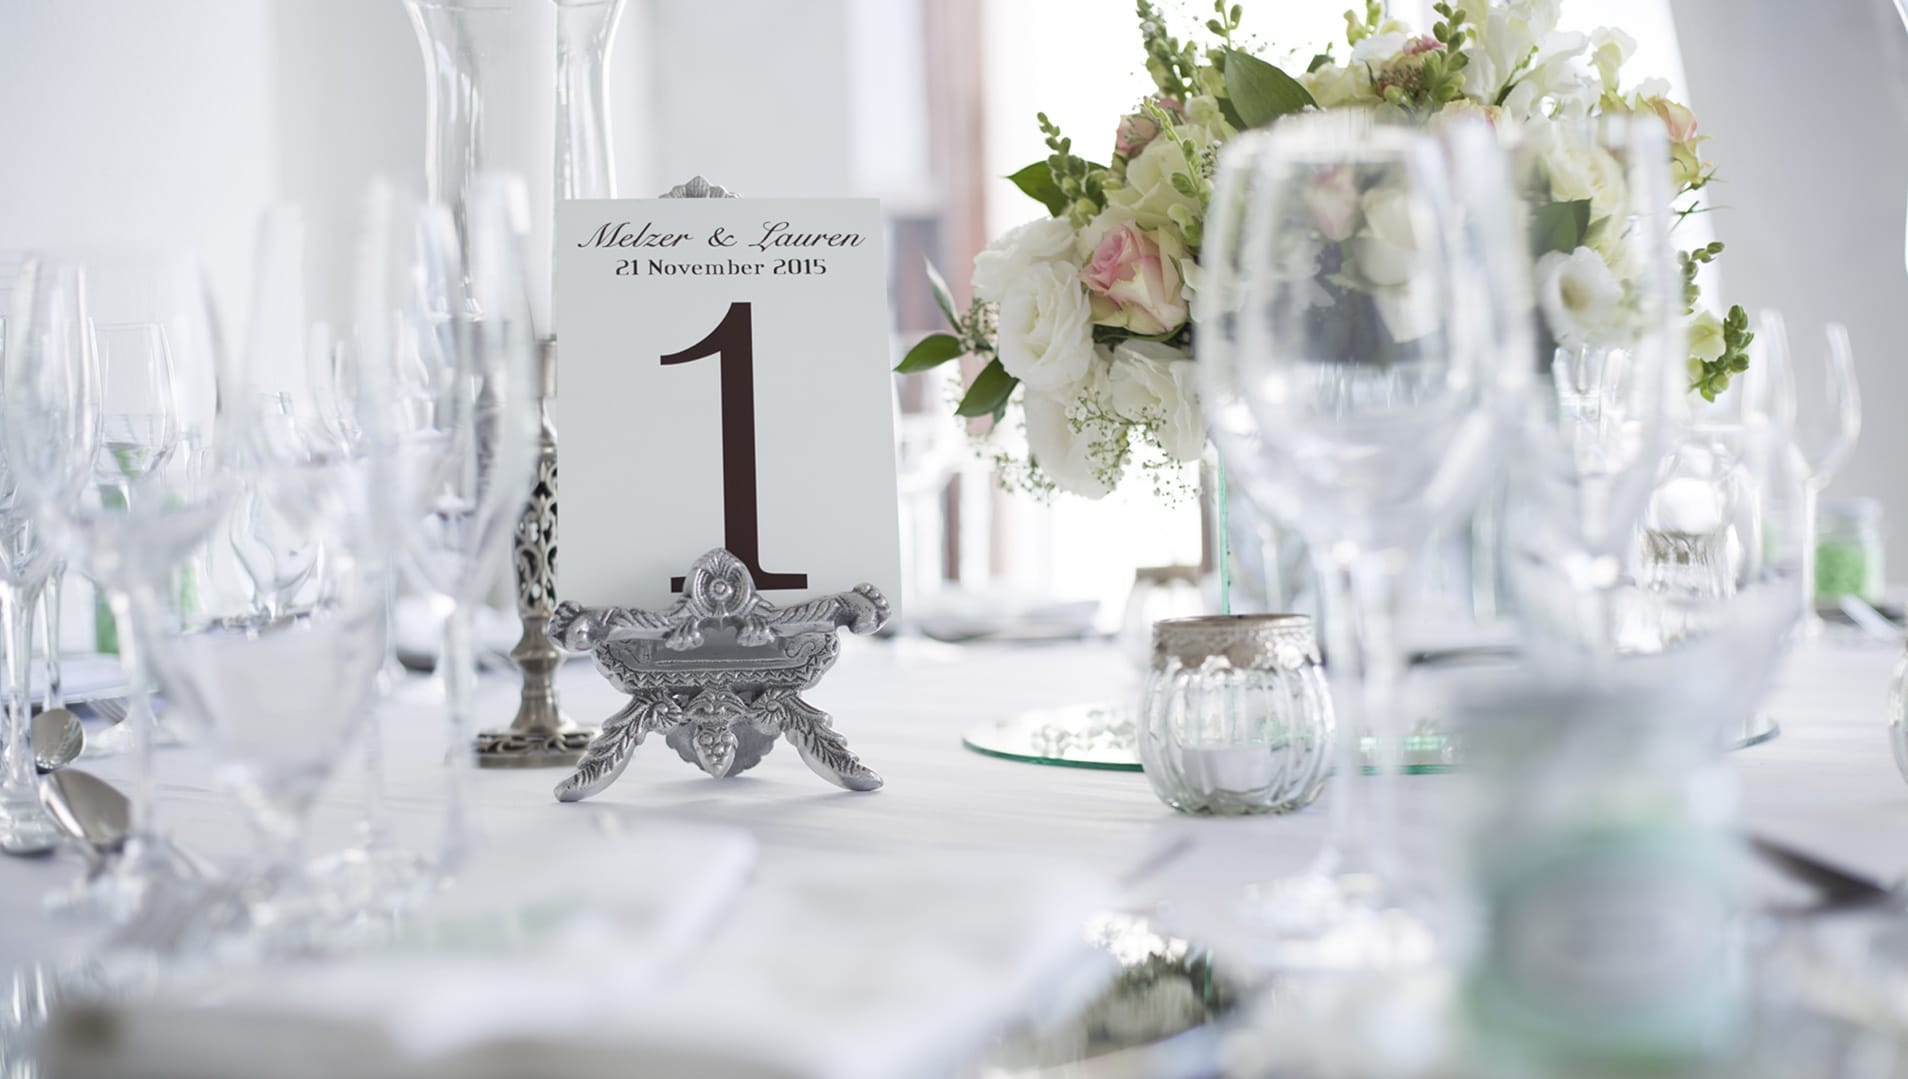 WEDDING PACKAGE ENQUIRY FORM